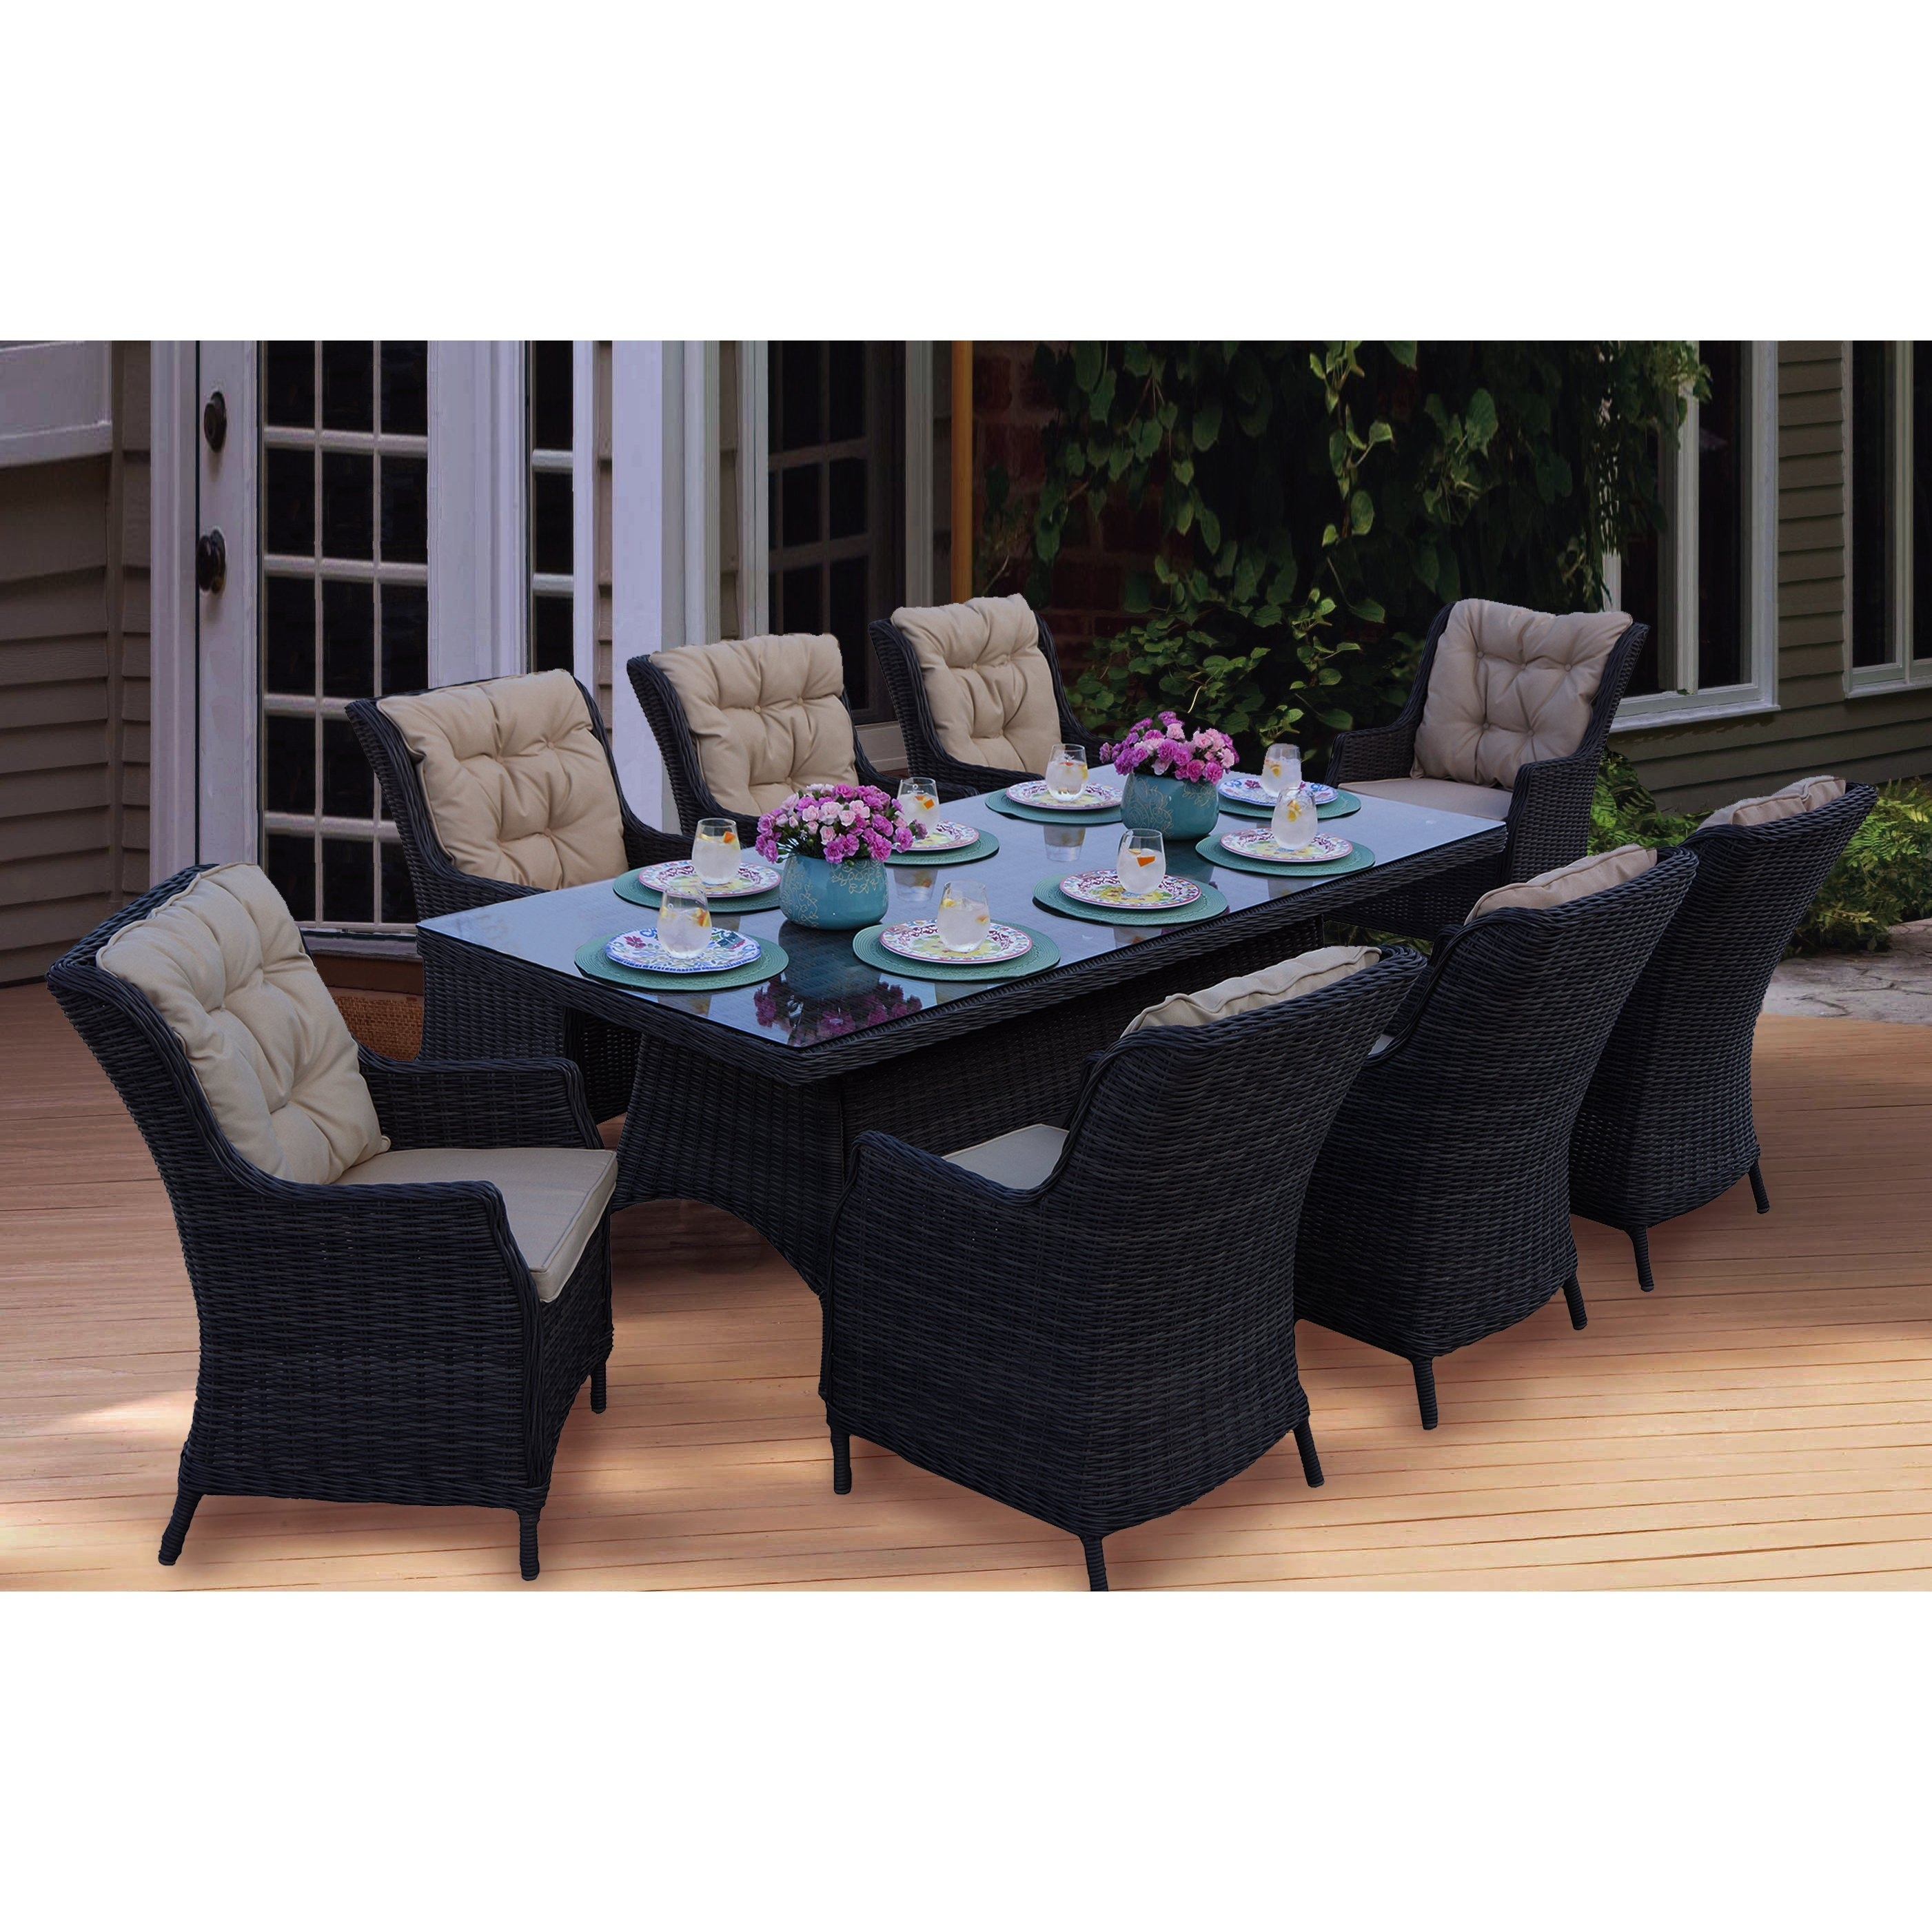 Shop Darlee Valencia Wicker Rectangular 9 Piece Dining Set (1 Table With Regard To 2017 Valencia 5 Piece 60 Inch Round Dining Sets (View 9 of 20)